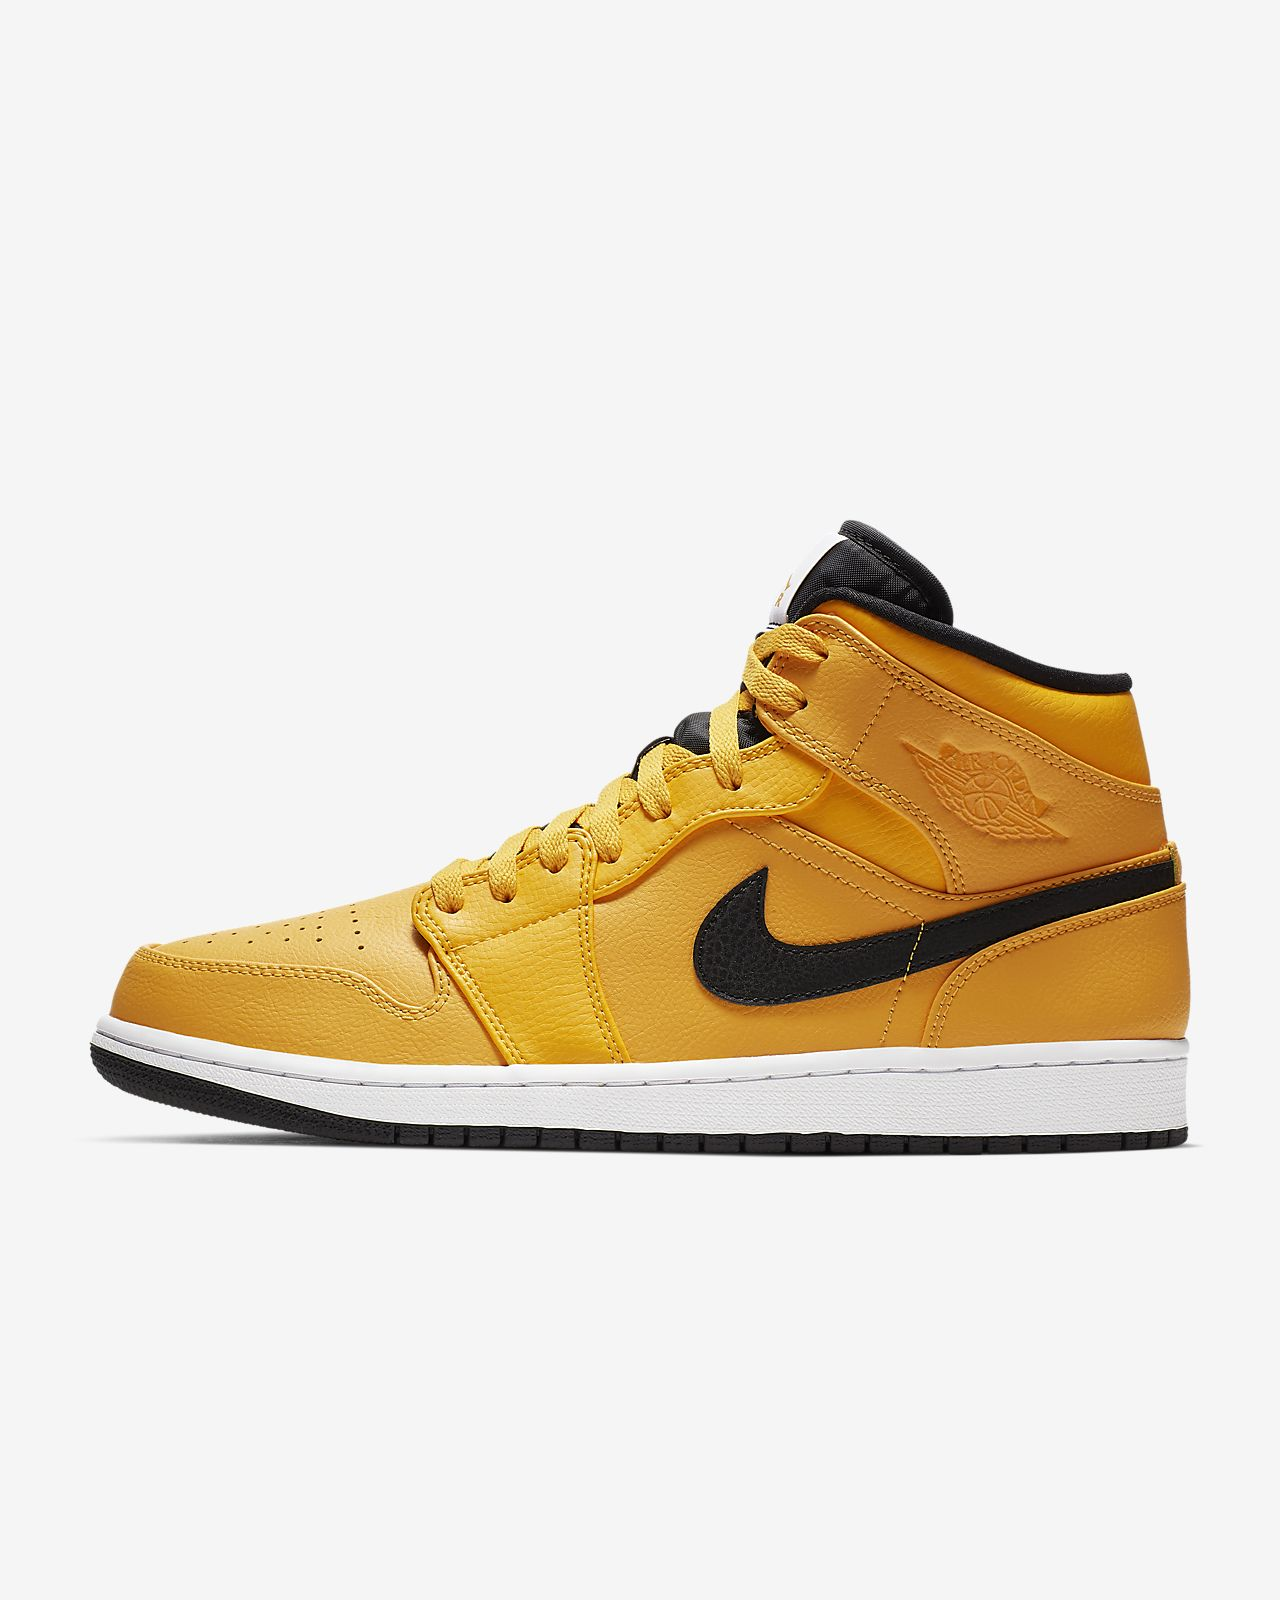 pick up 57655 6e3c6 ... Air Jordan 1 Mid Men s Shoe